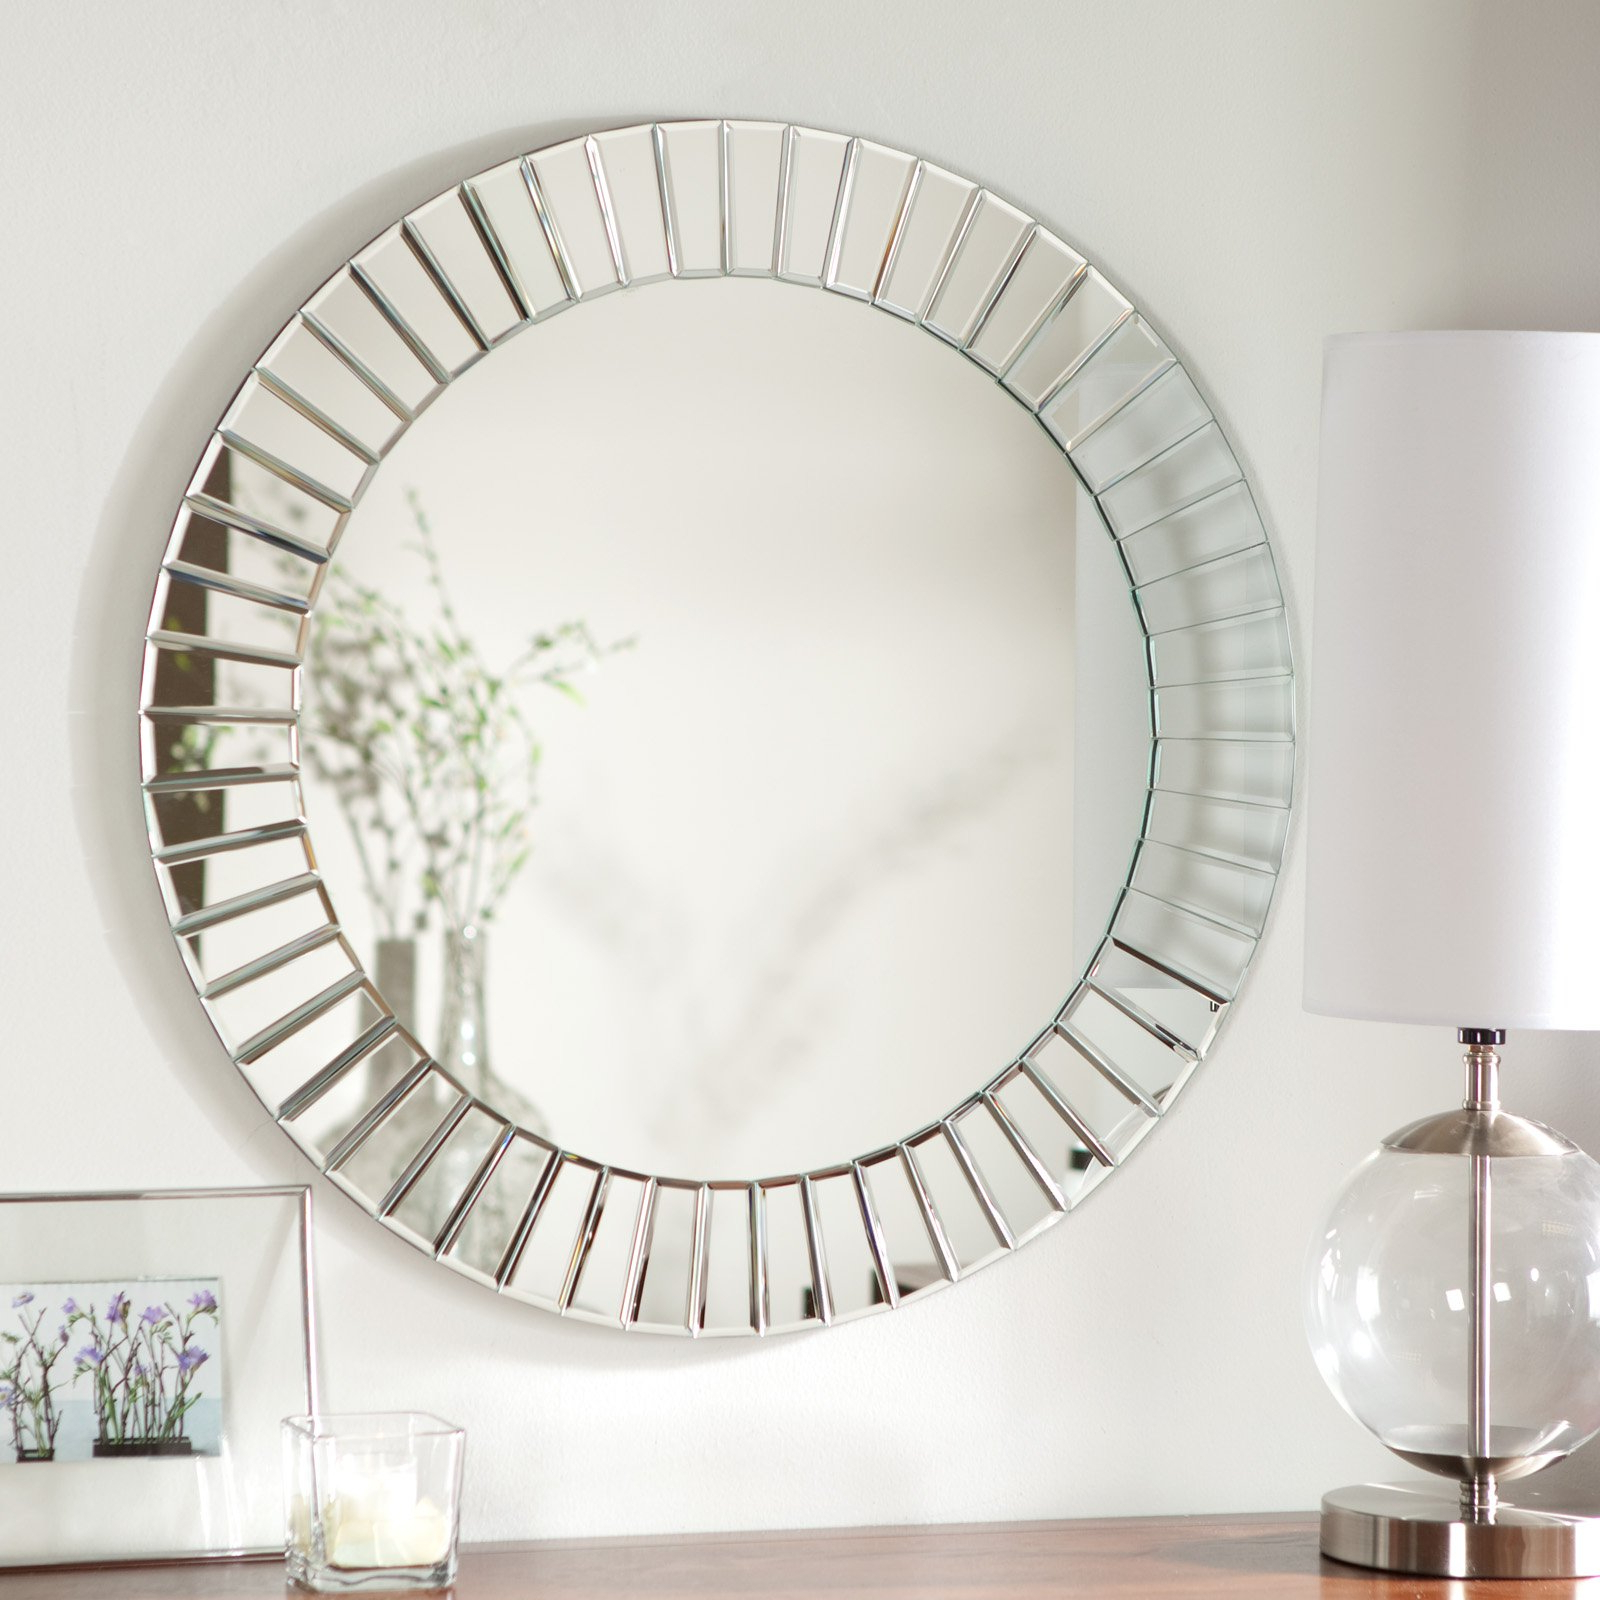 Remarkable Decorative Beveled Wall Mirrors Frame Large Three Diy Throughout Most Recent Large Wall Mirror Without Frame (View 10 of 20)